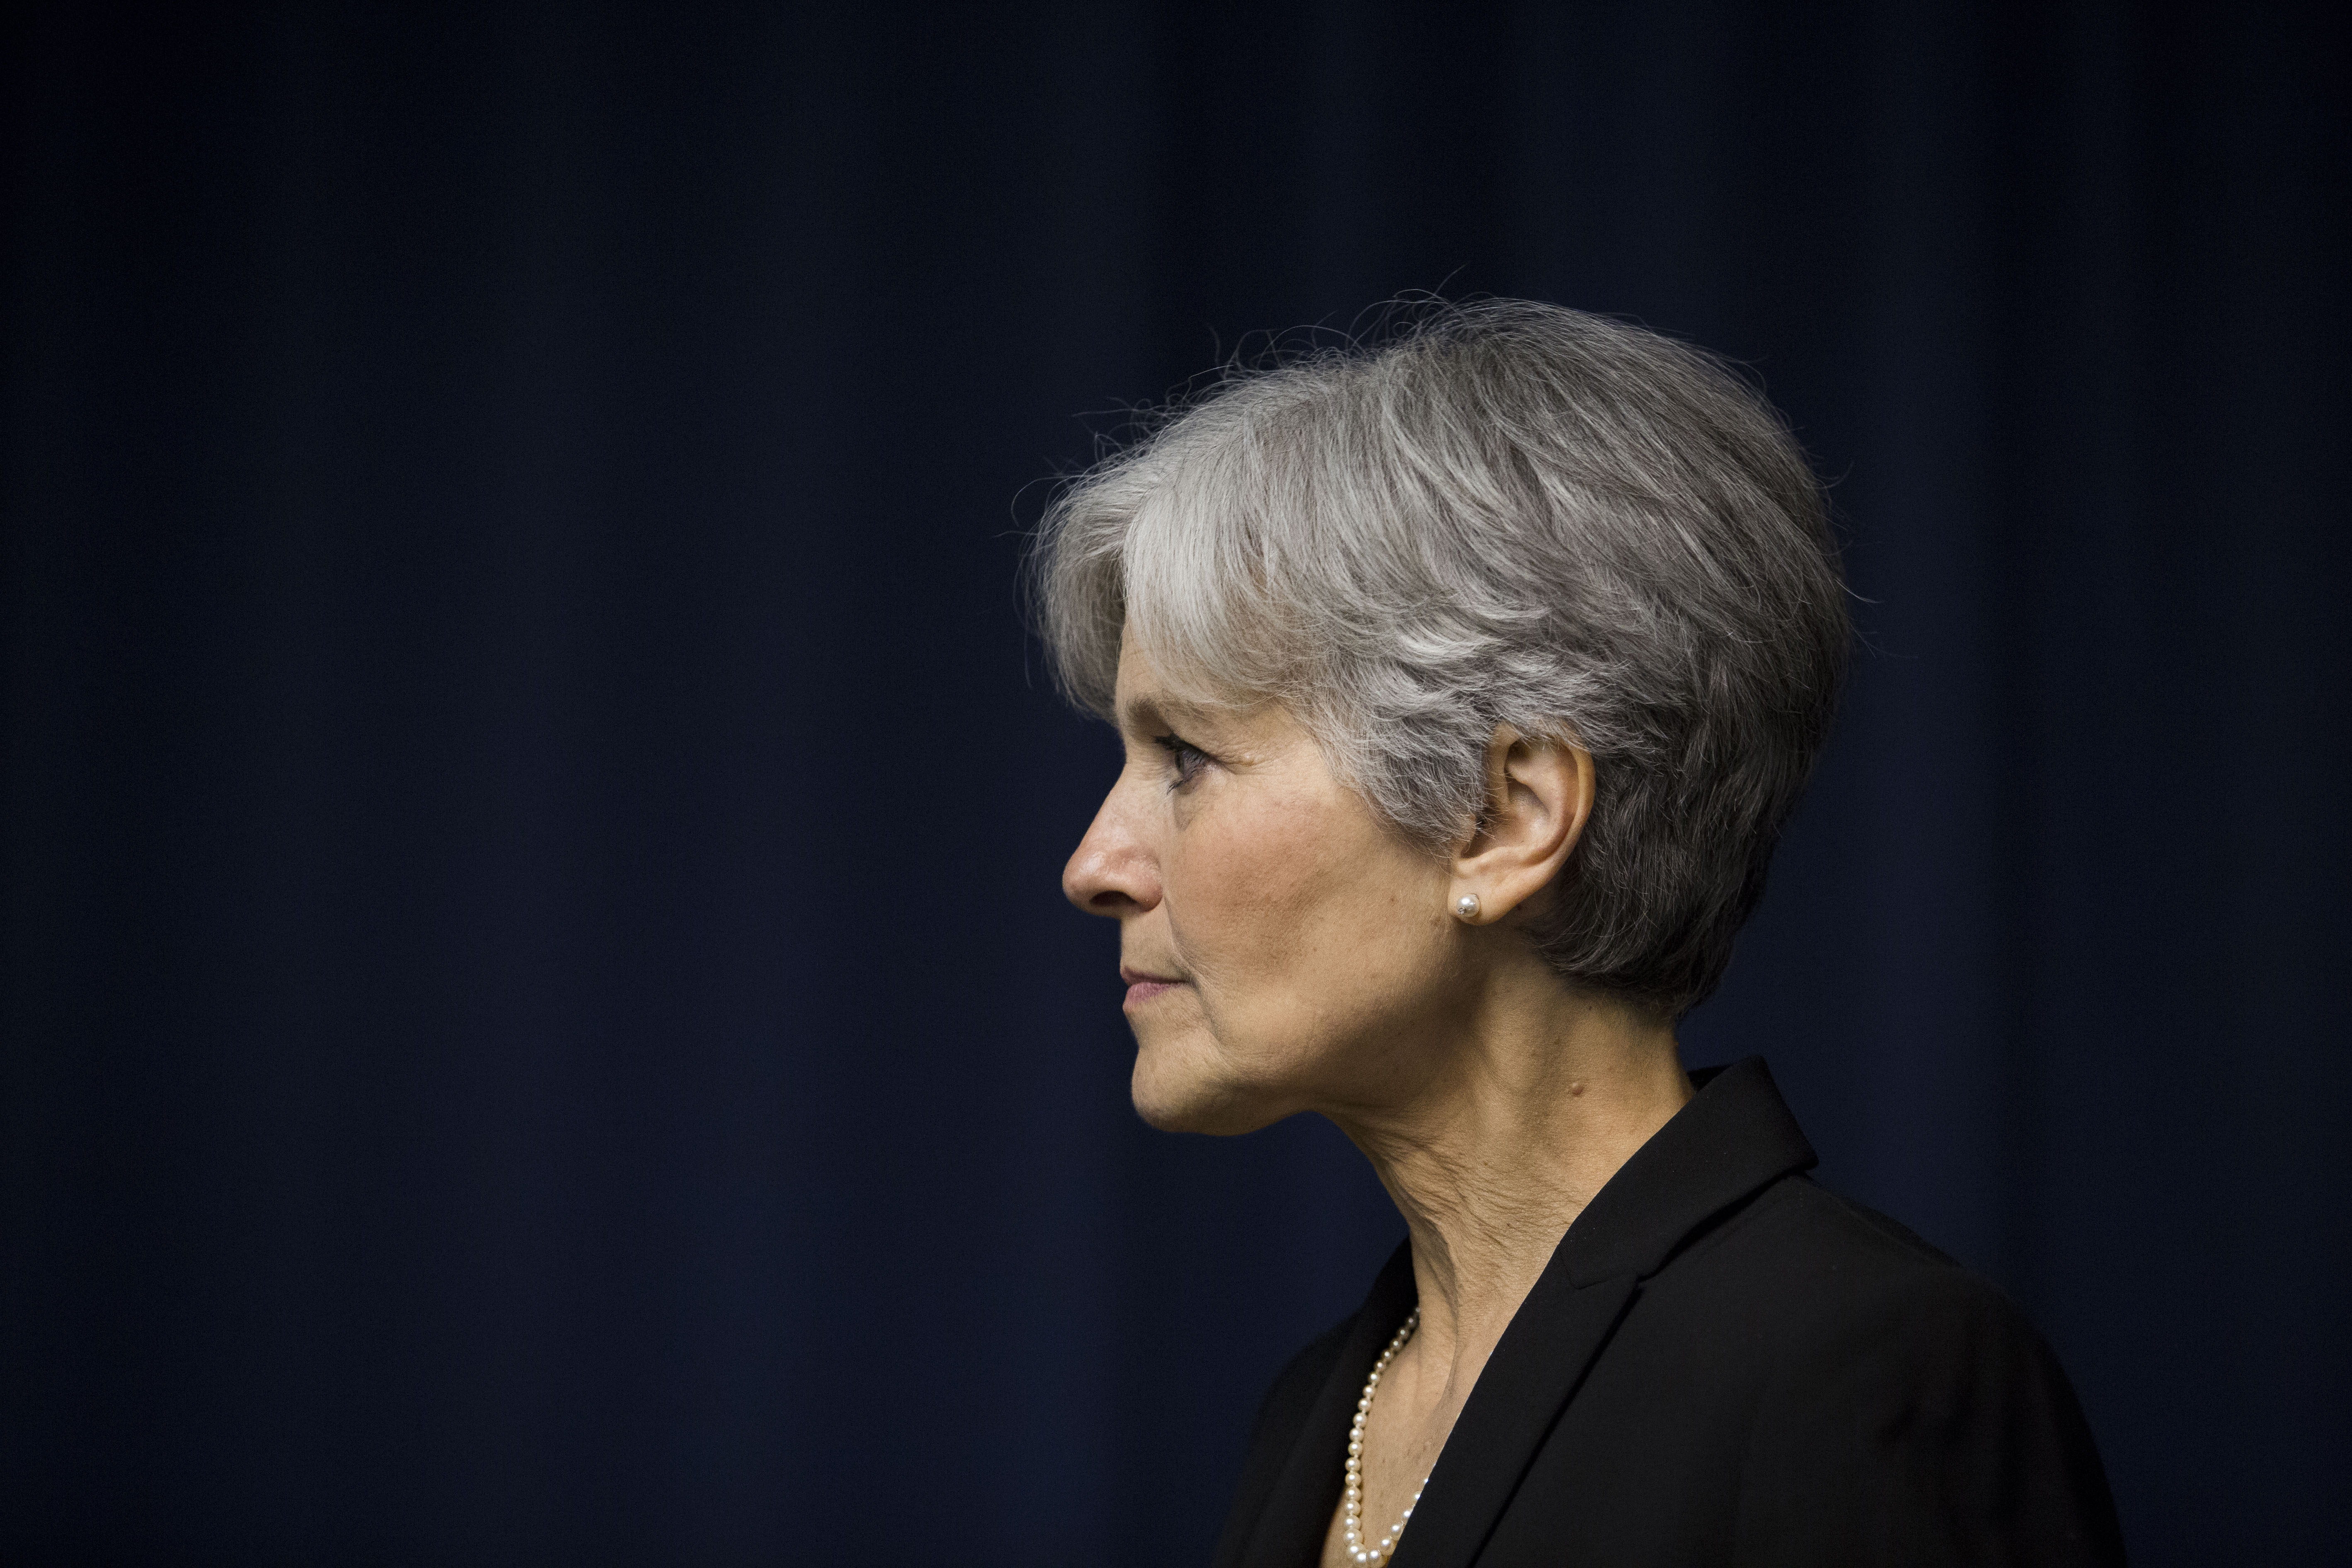 Jill Stein announcing she will seek the Green Party's presidential nomination on June 23, 2015. She is now the party's selection.